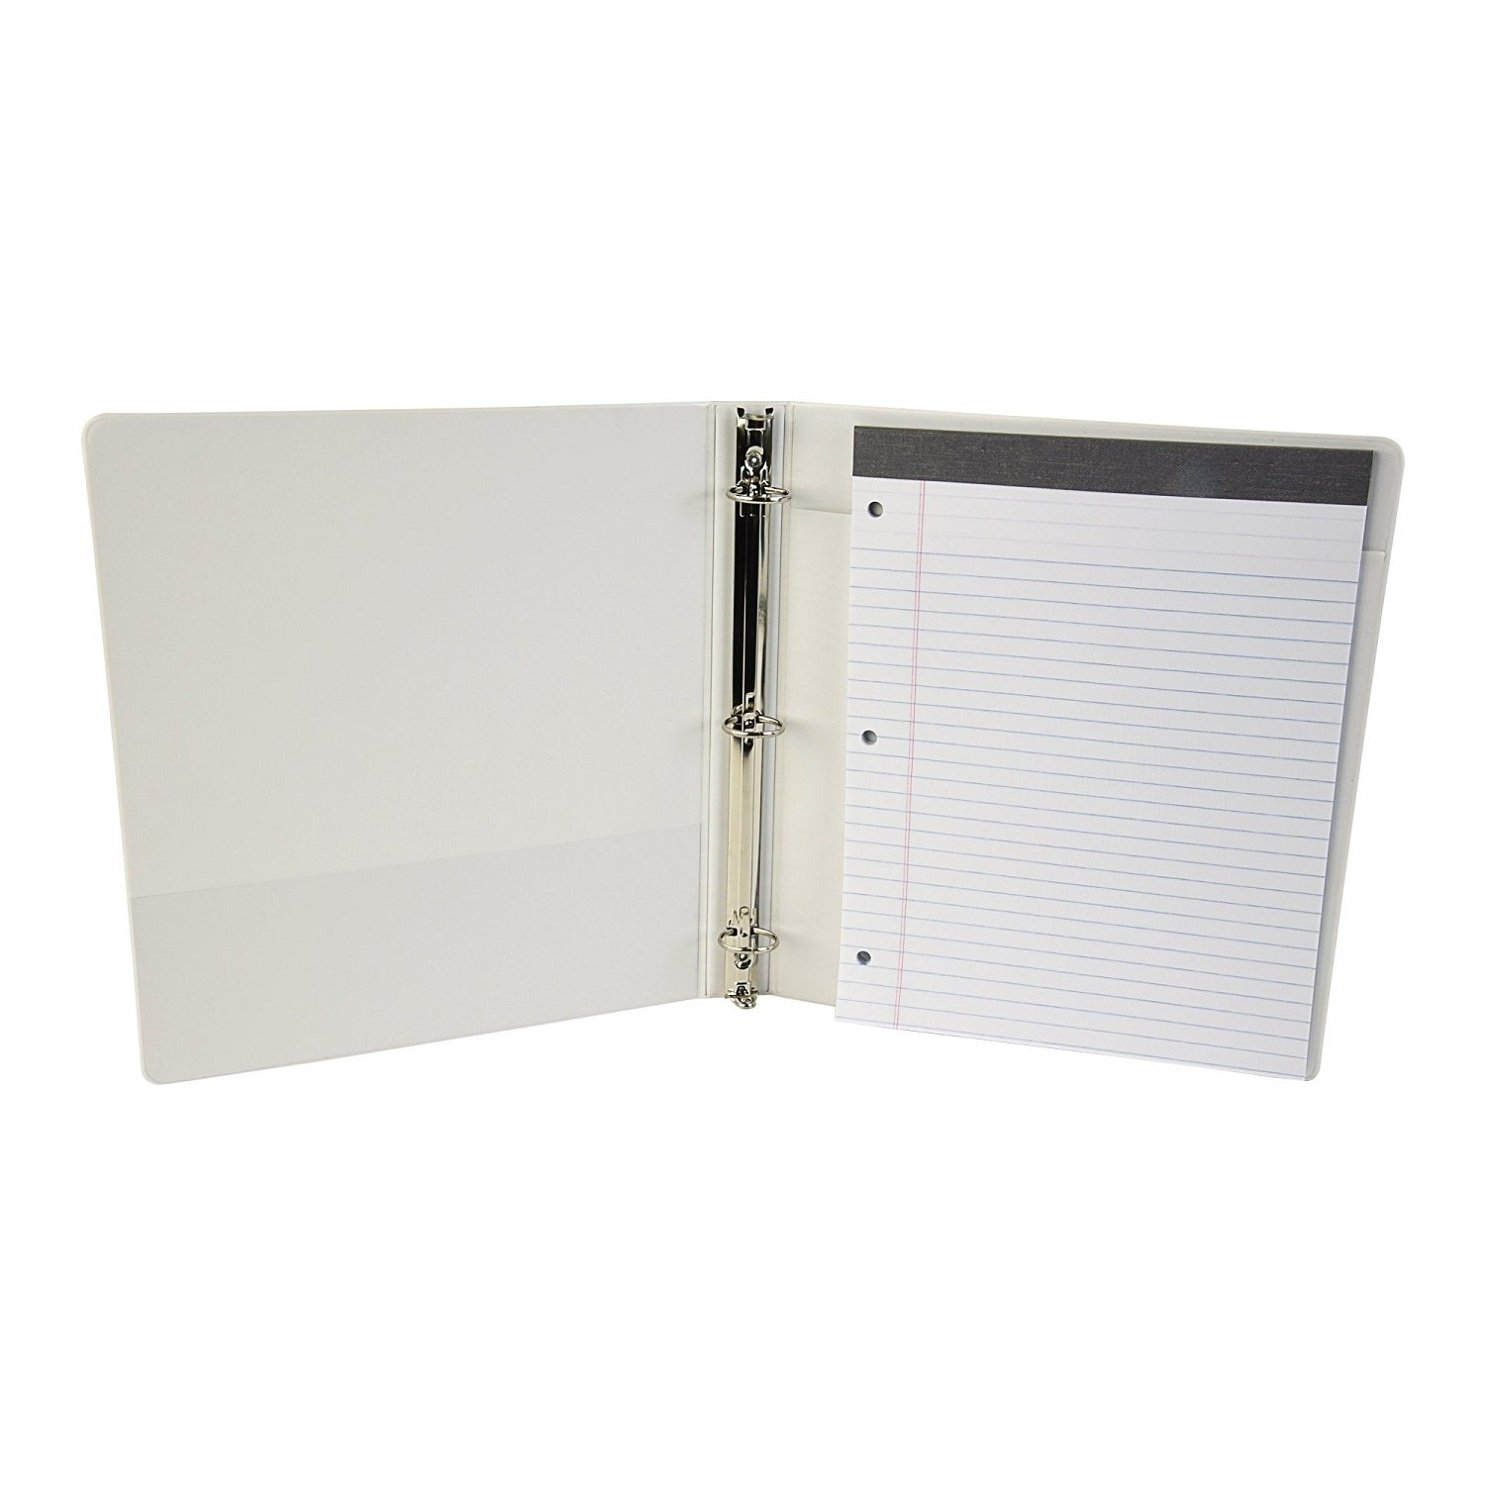 Samsill 2-in-1 3 Ring Binder & Padfolio, Customizable, Clear View, 1 Inch Round Rings, White